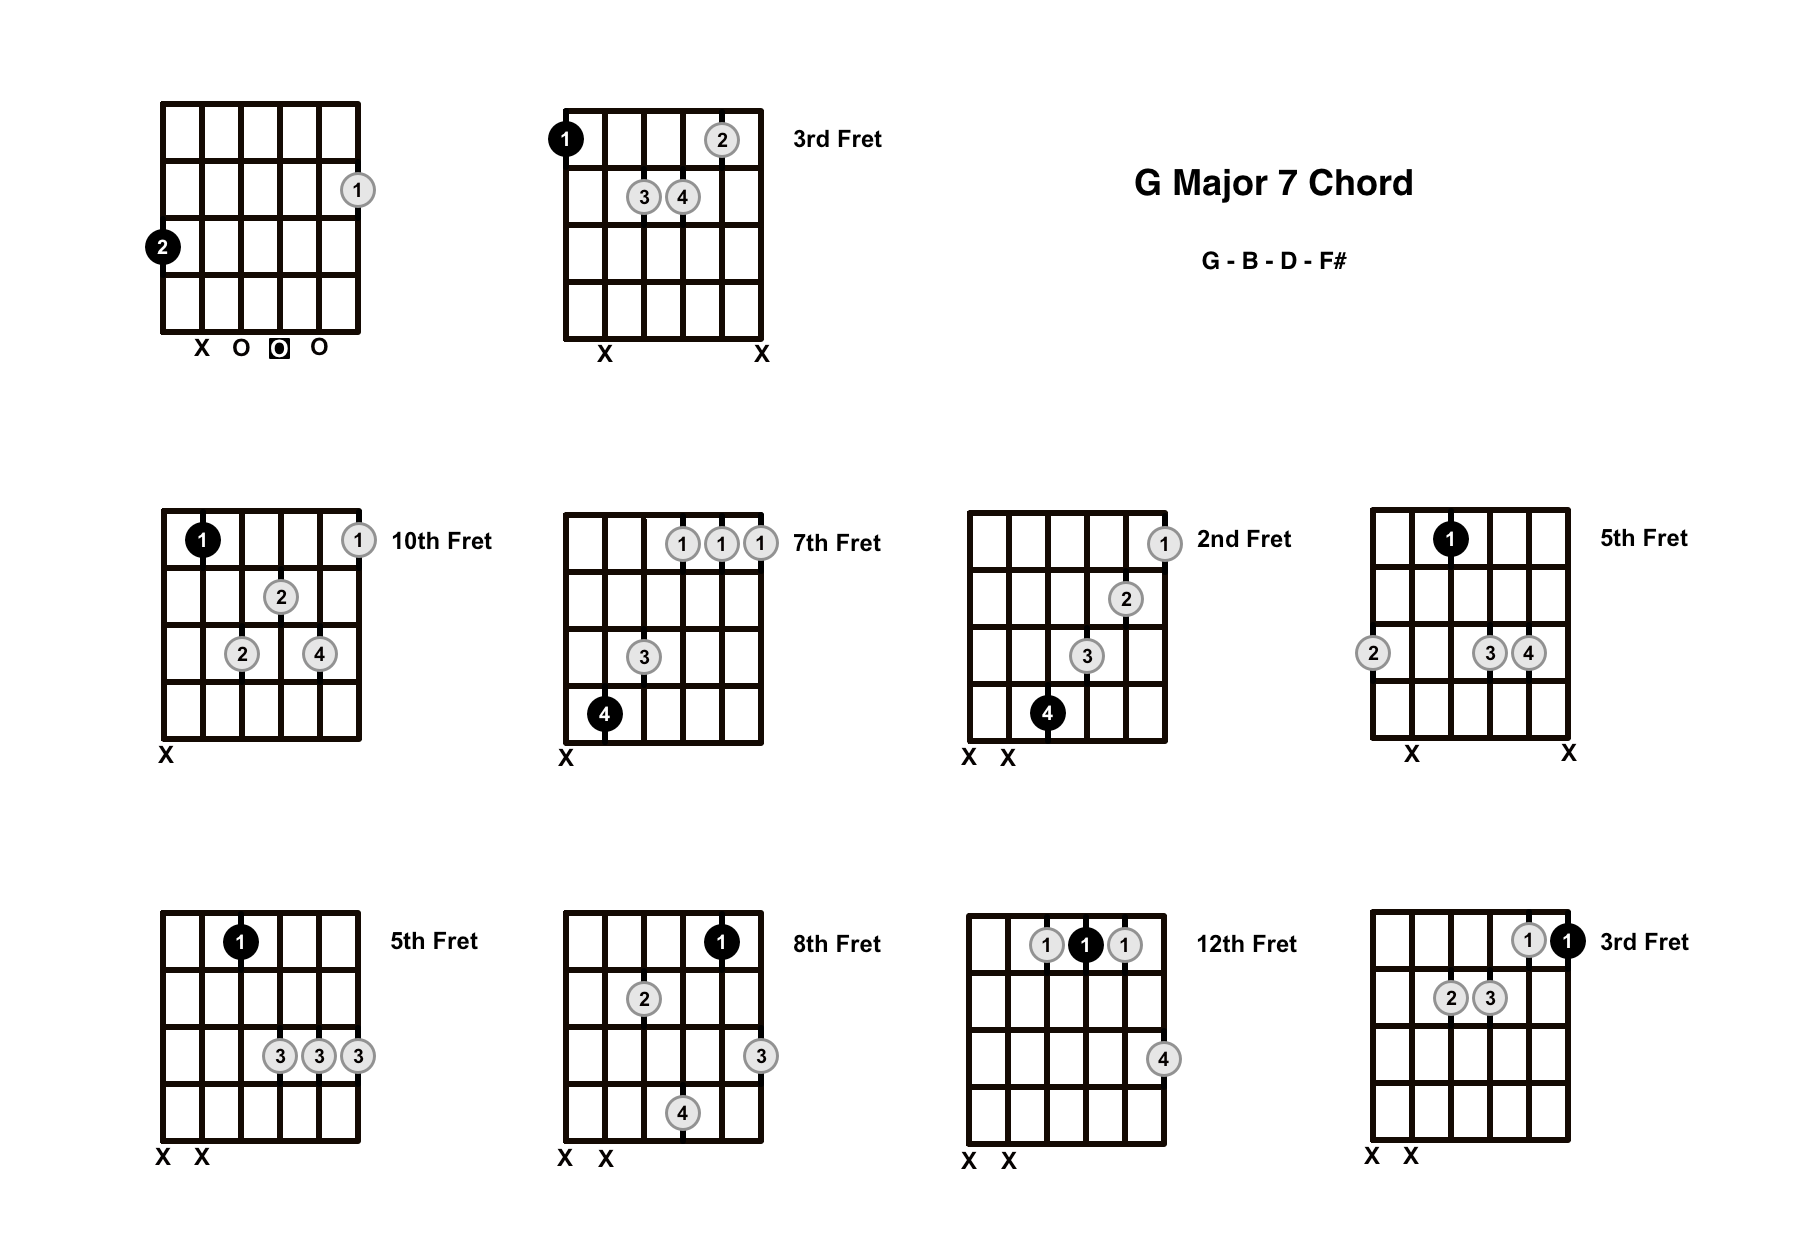 G Major 7 Chord On The Guitar (G Maj 7) – Diagrams, Finger Positions and Theory